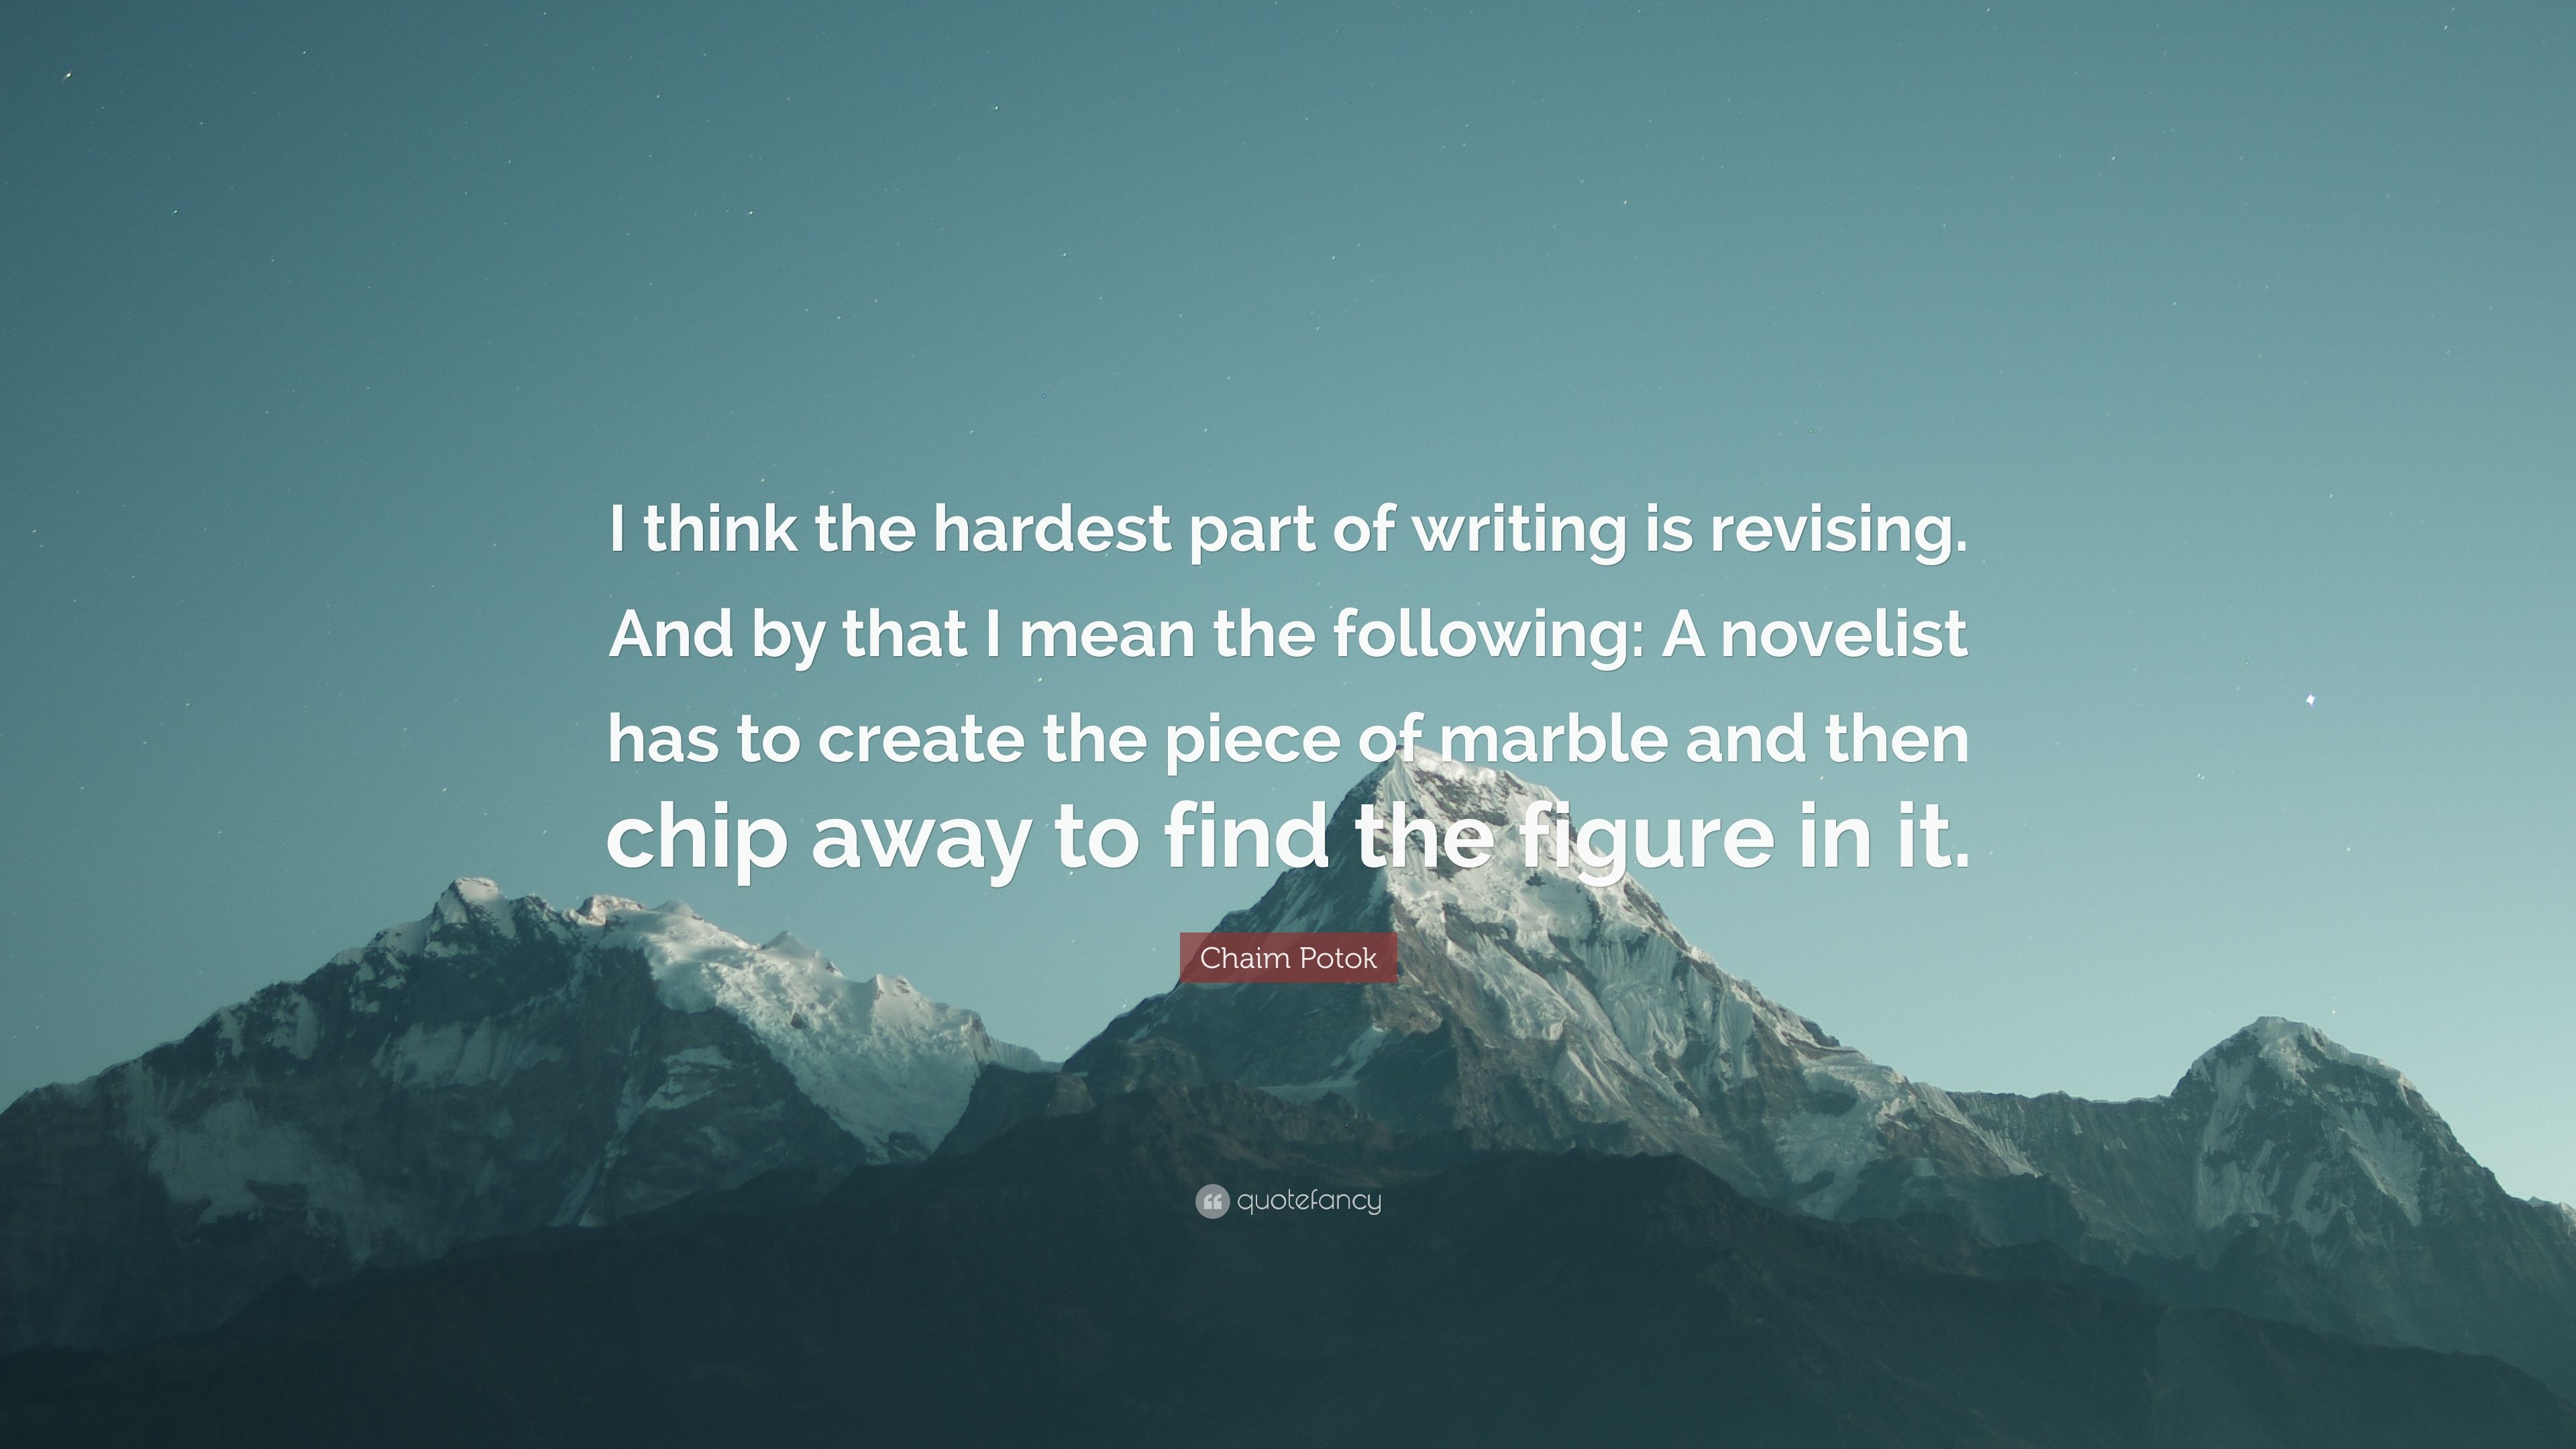 Best Wallpaper Marble Writing - 3328752-Chaim-Potok-Quote-I-think-the-hardest-part-of-writing-is-revising  You Should Have_761719.jpg